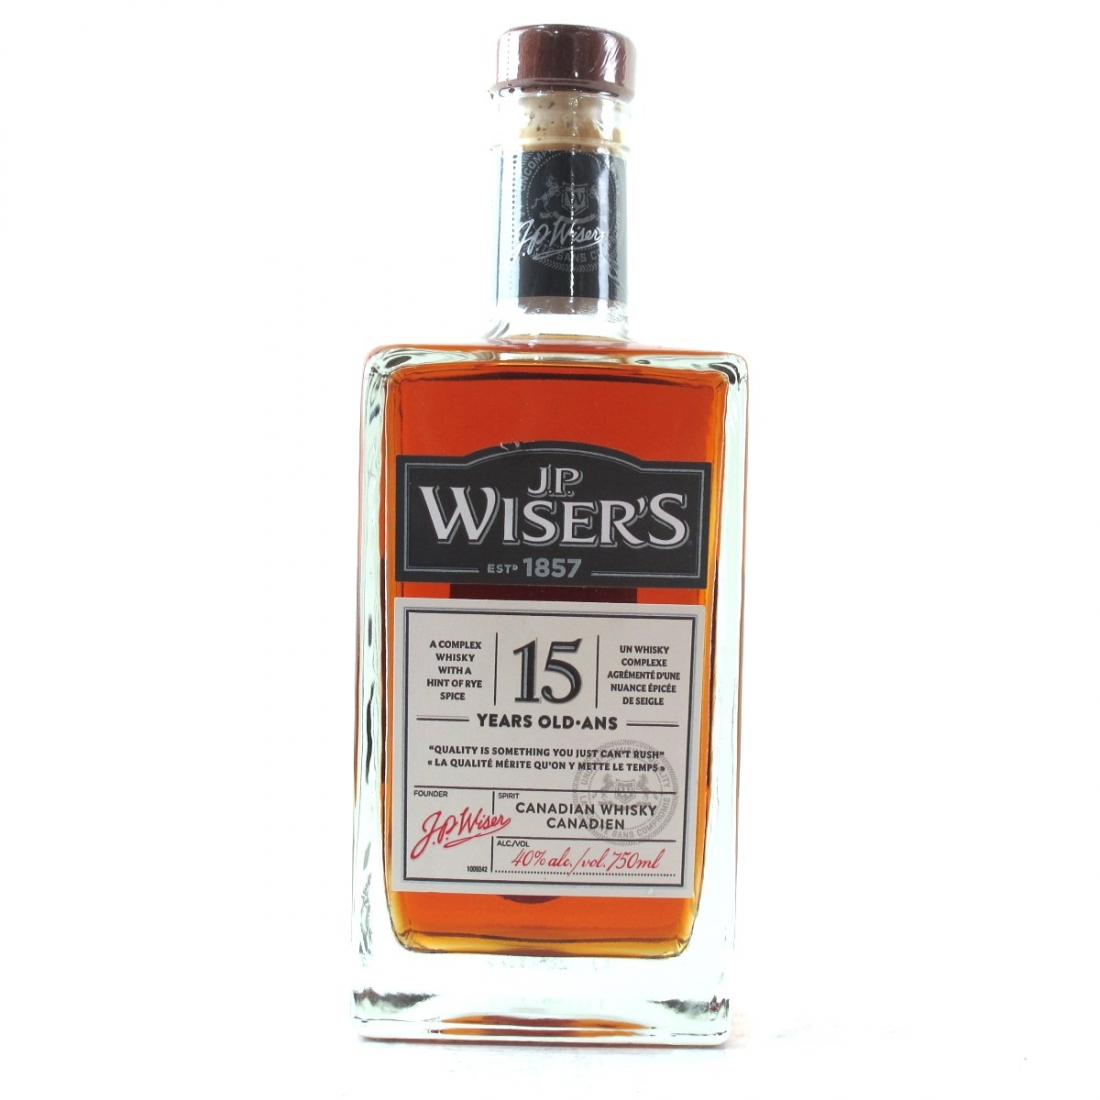 J.P. Wiser's 15 Year Old Canadian Whisky